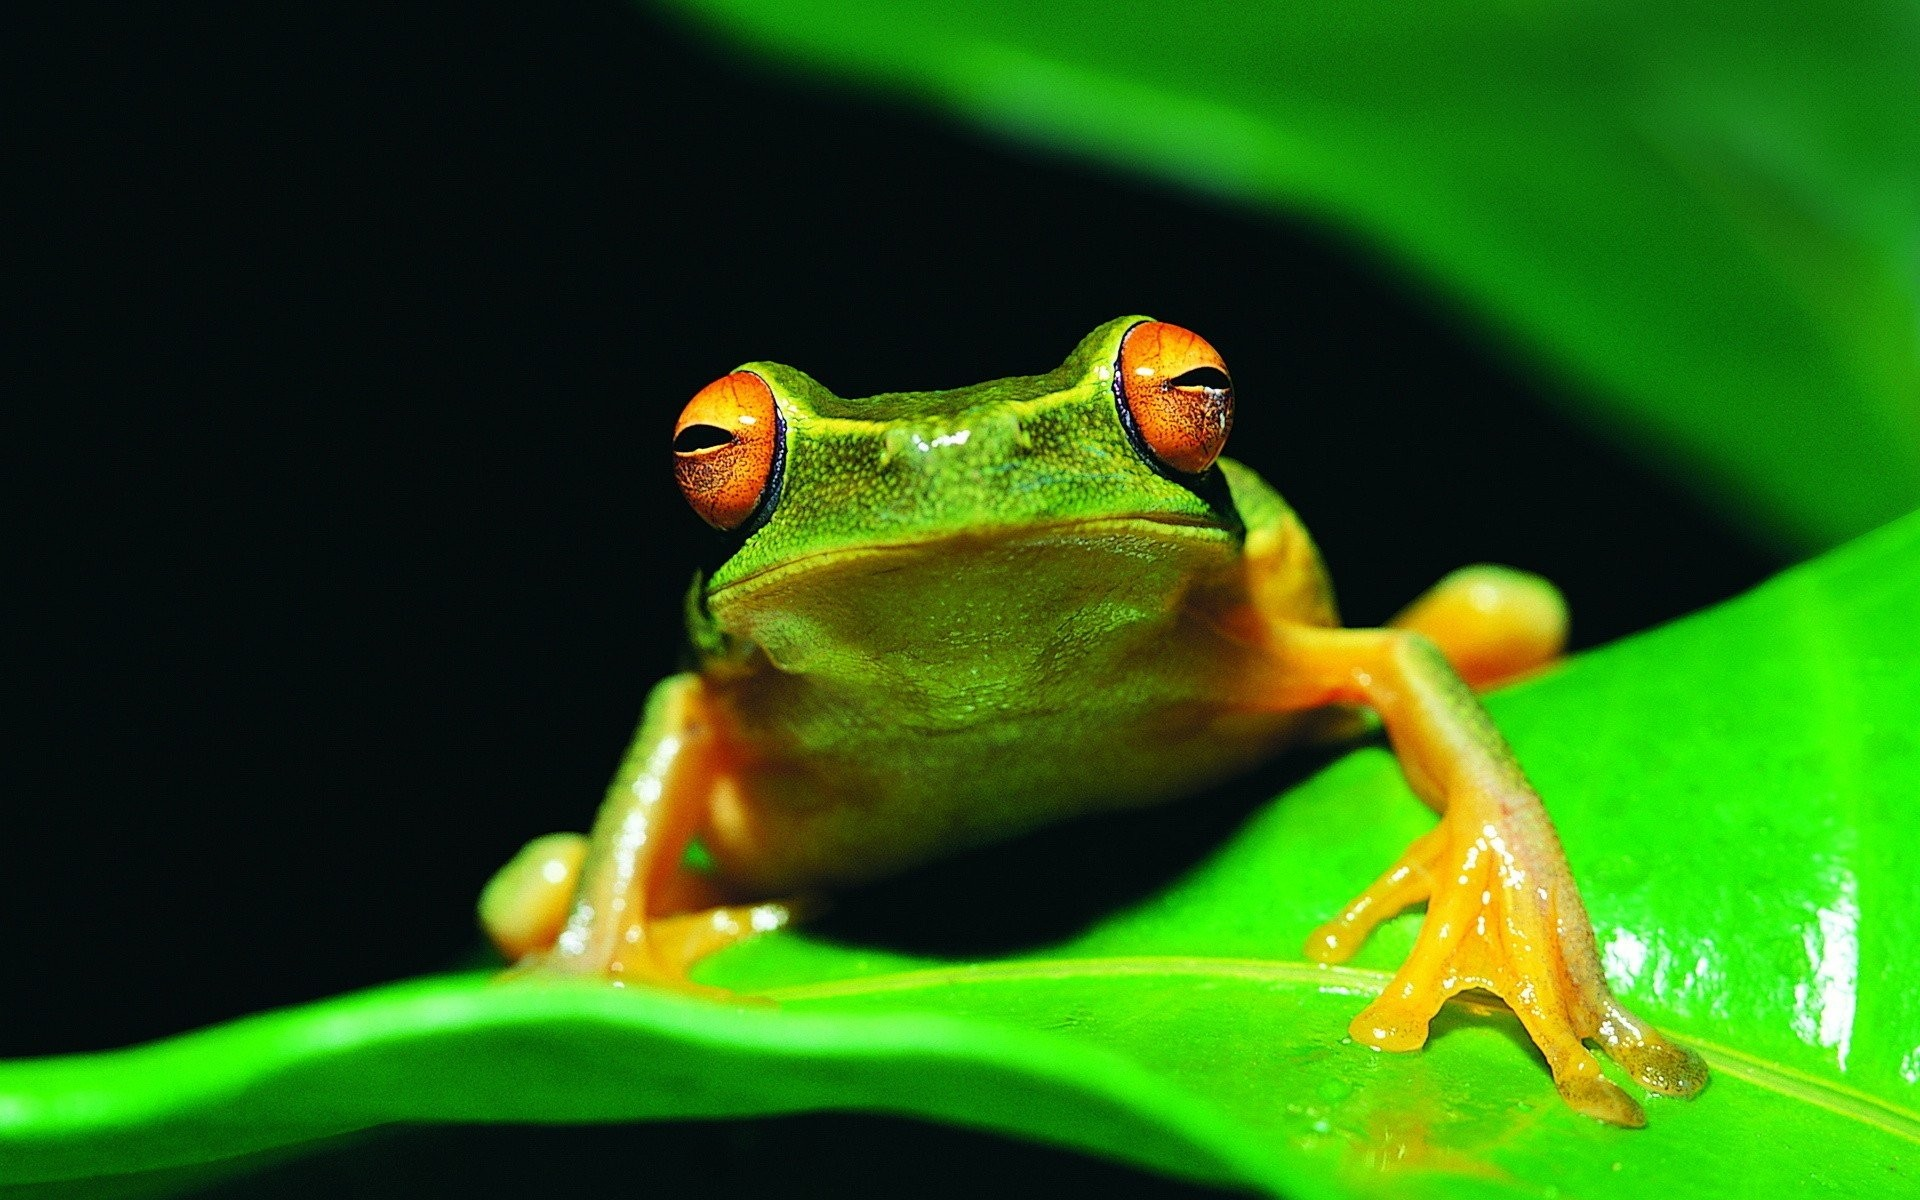 Animal Photos Amphibians Frog Apple Wallpaper HD Mobile 1920x1200